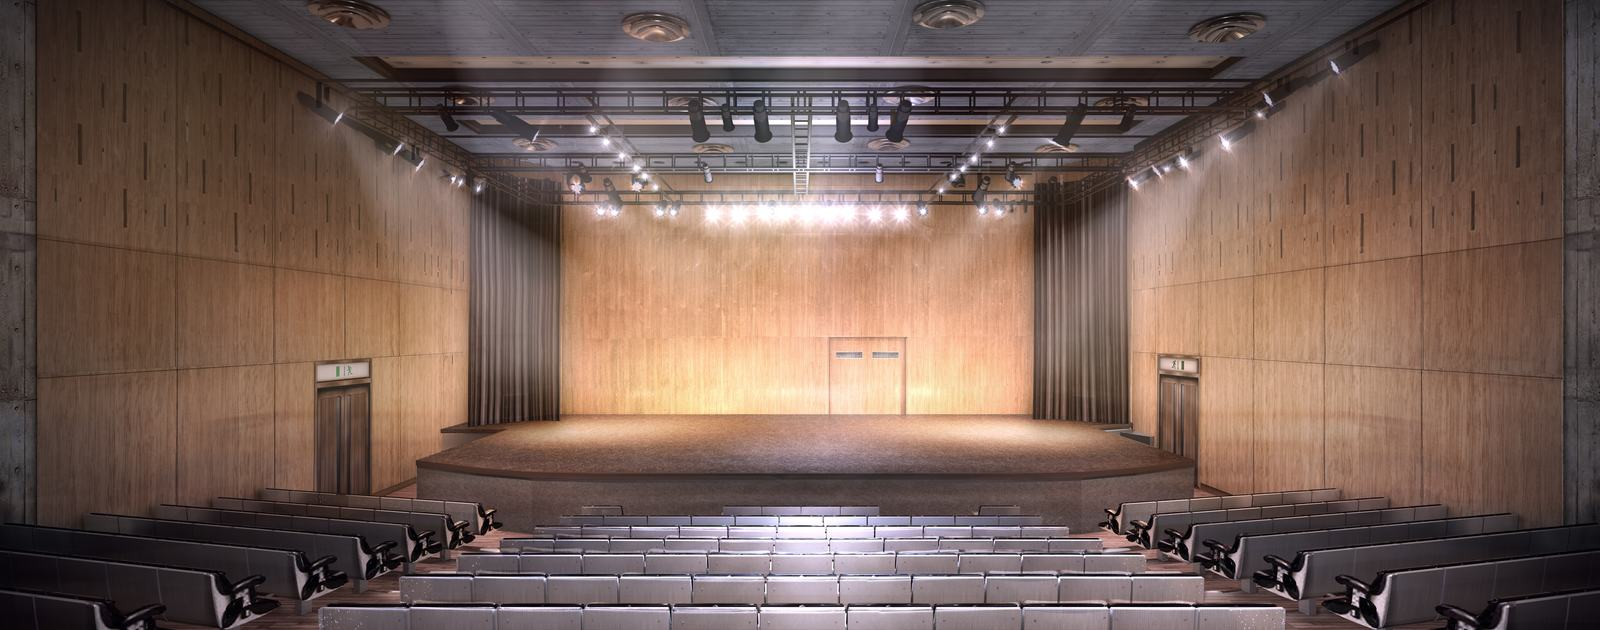 The Refurbished Purcell Room